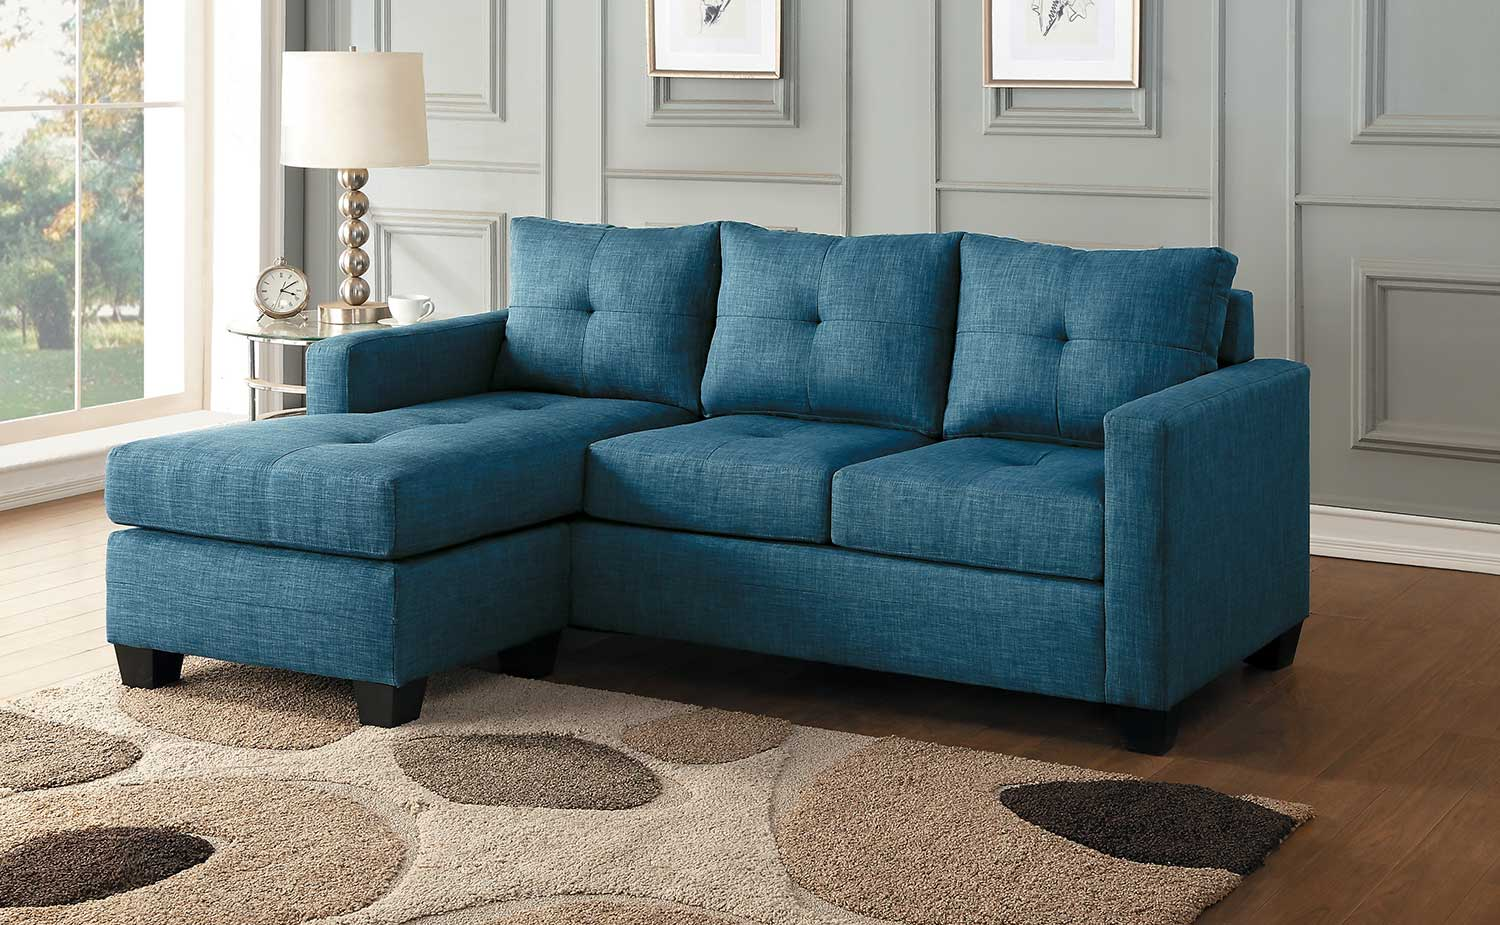 Homelegance Phelps Reversible Sofa Chaise - Blue